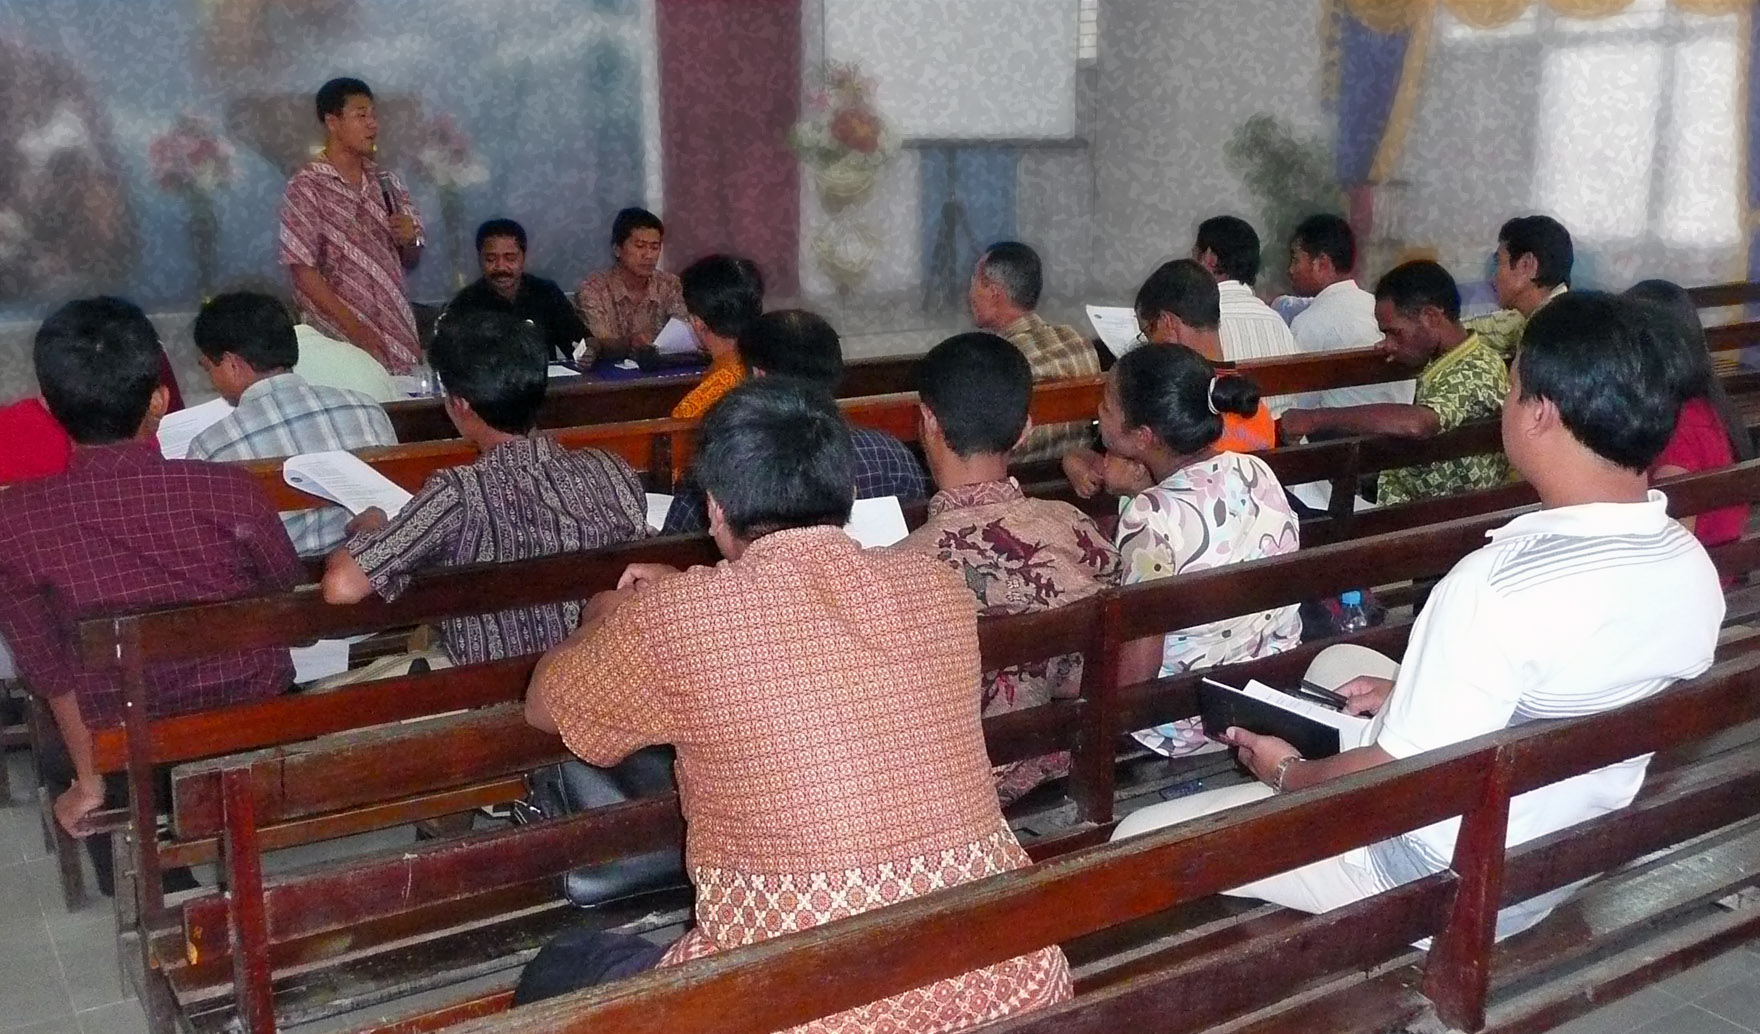 Training conferences help Christians reach out